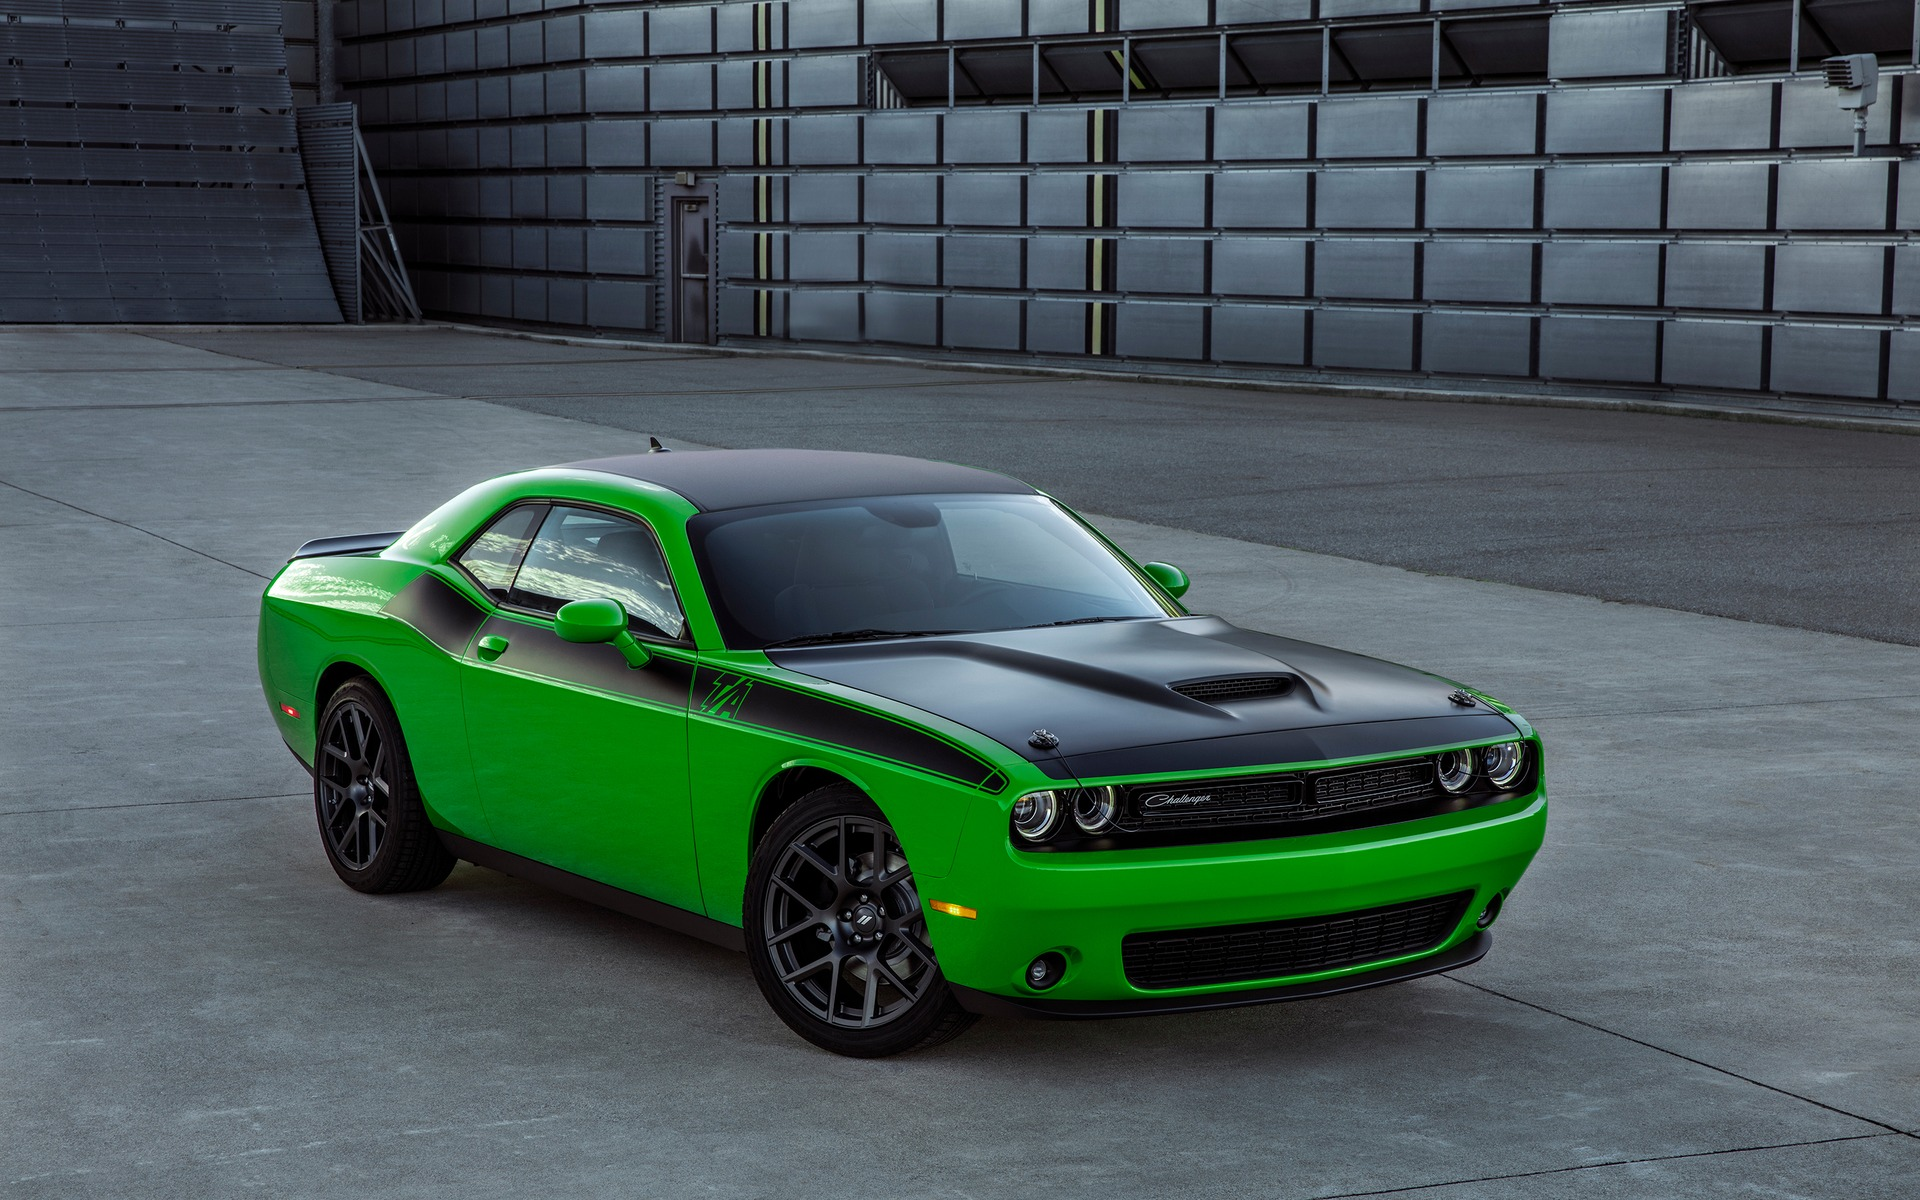 Muscle Car Sales Slowing Down in the U.S. - The Car Guide